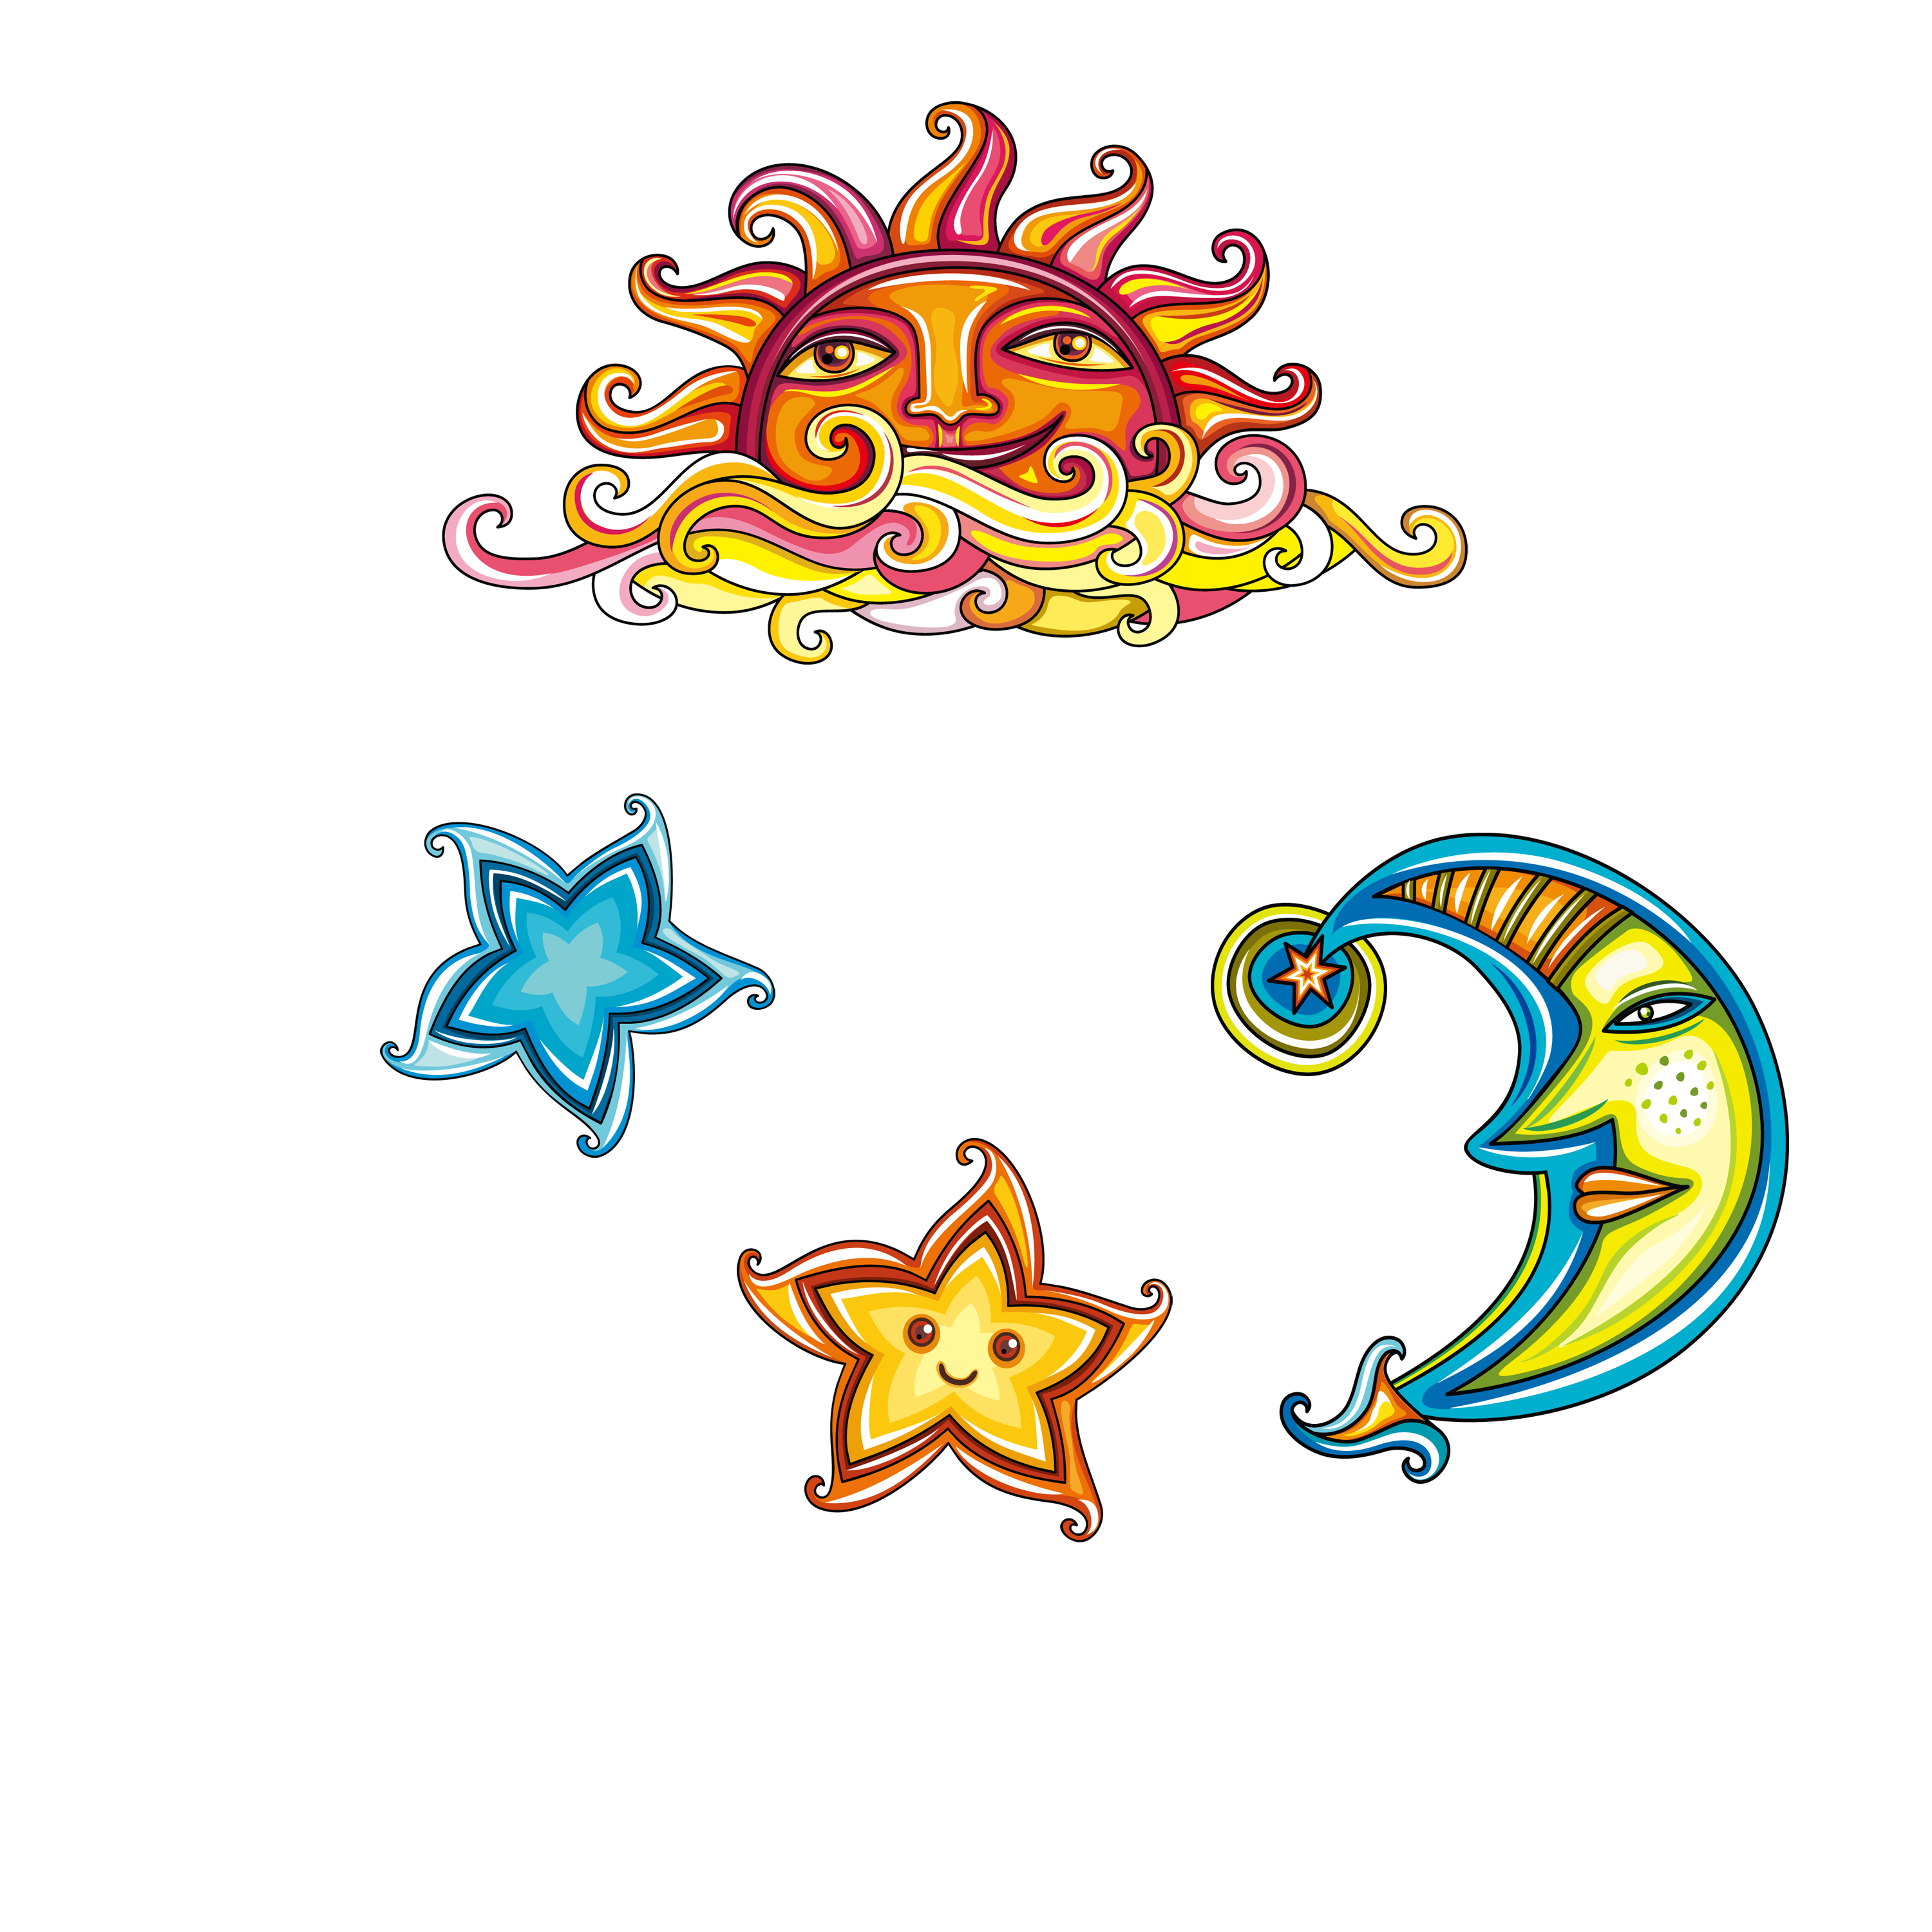 Sun moon star clipart graphic royalty free Illustration - Sun Moon Star 3000*3000 transprent Png Free Download ... graphic royalty free